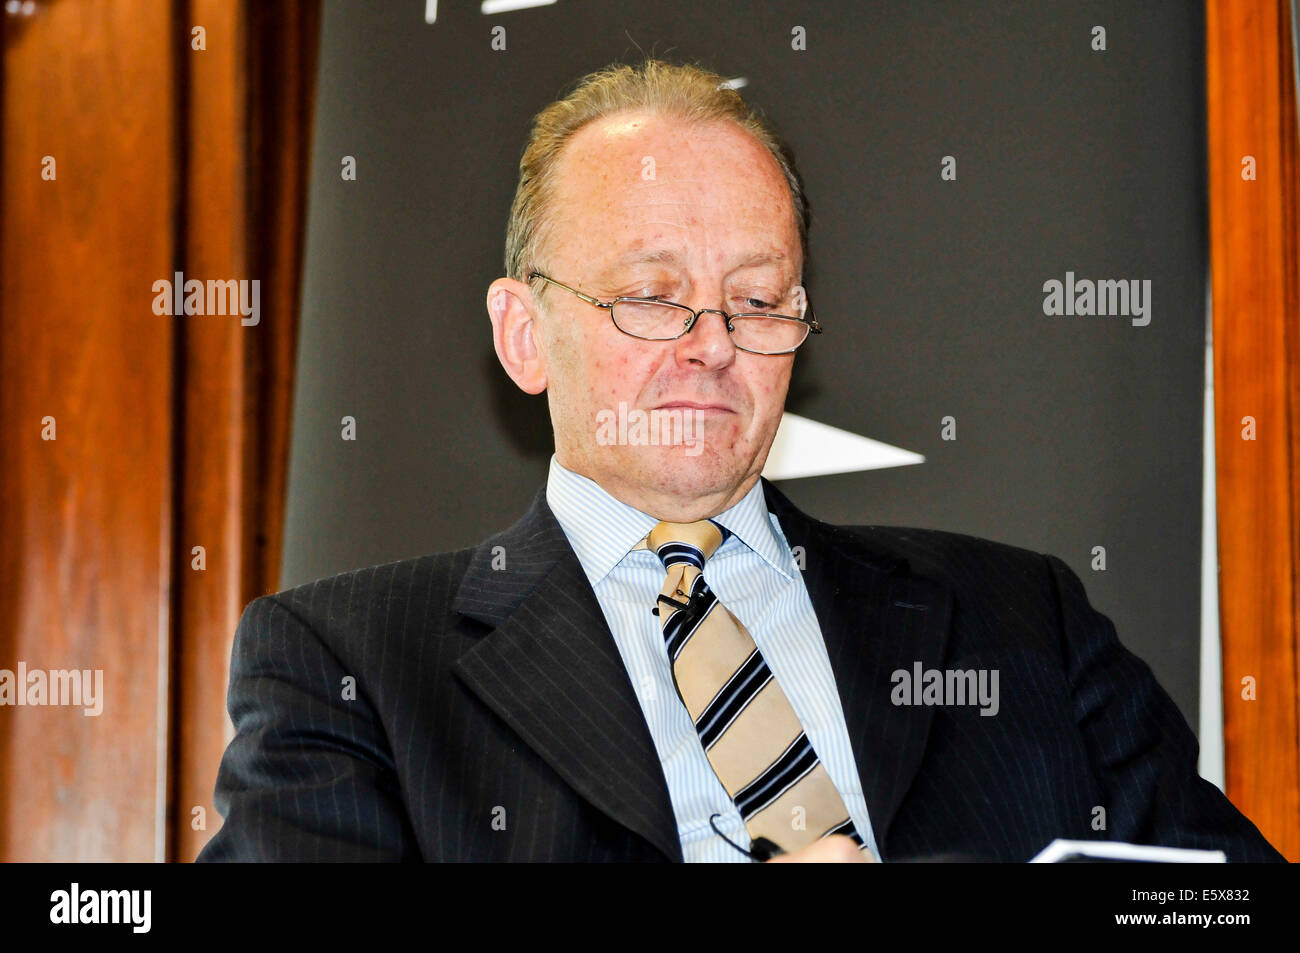 Belfast, Northern Ireland. 7th Aug 2014 - Sir Hugh Orde in discussion with John Ware, Belfast Credit:  Stephen Barnes/Alamy - Stock Image